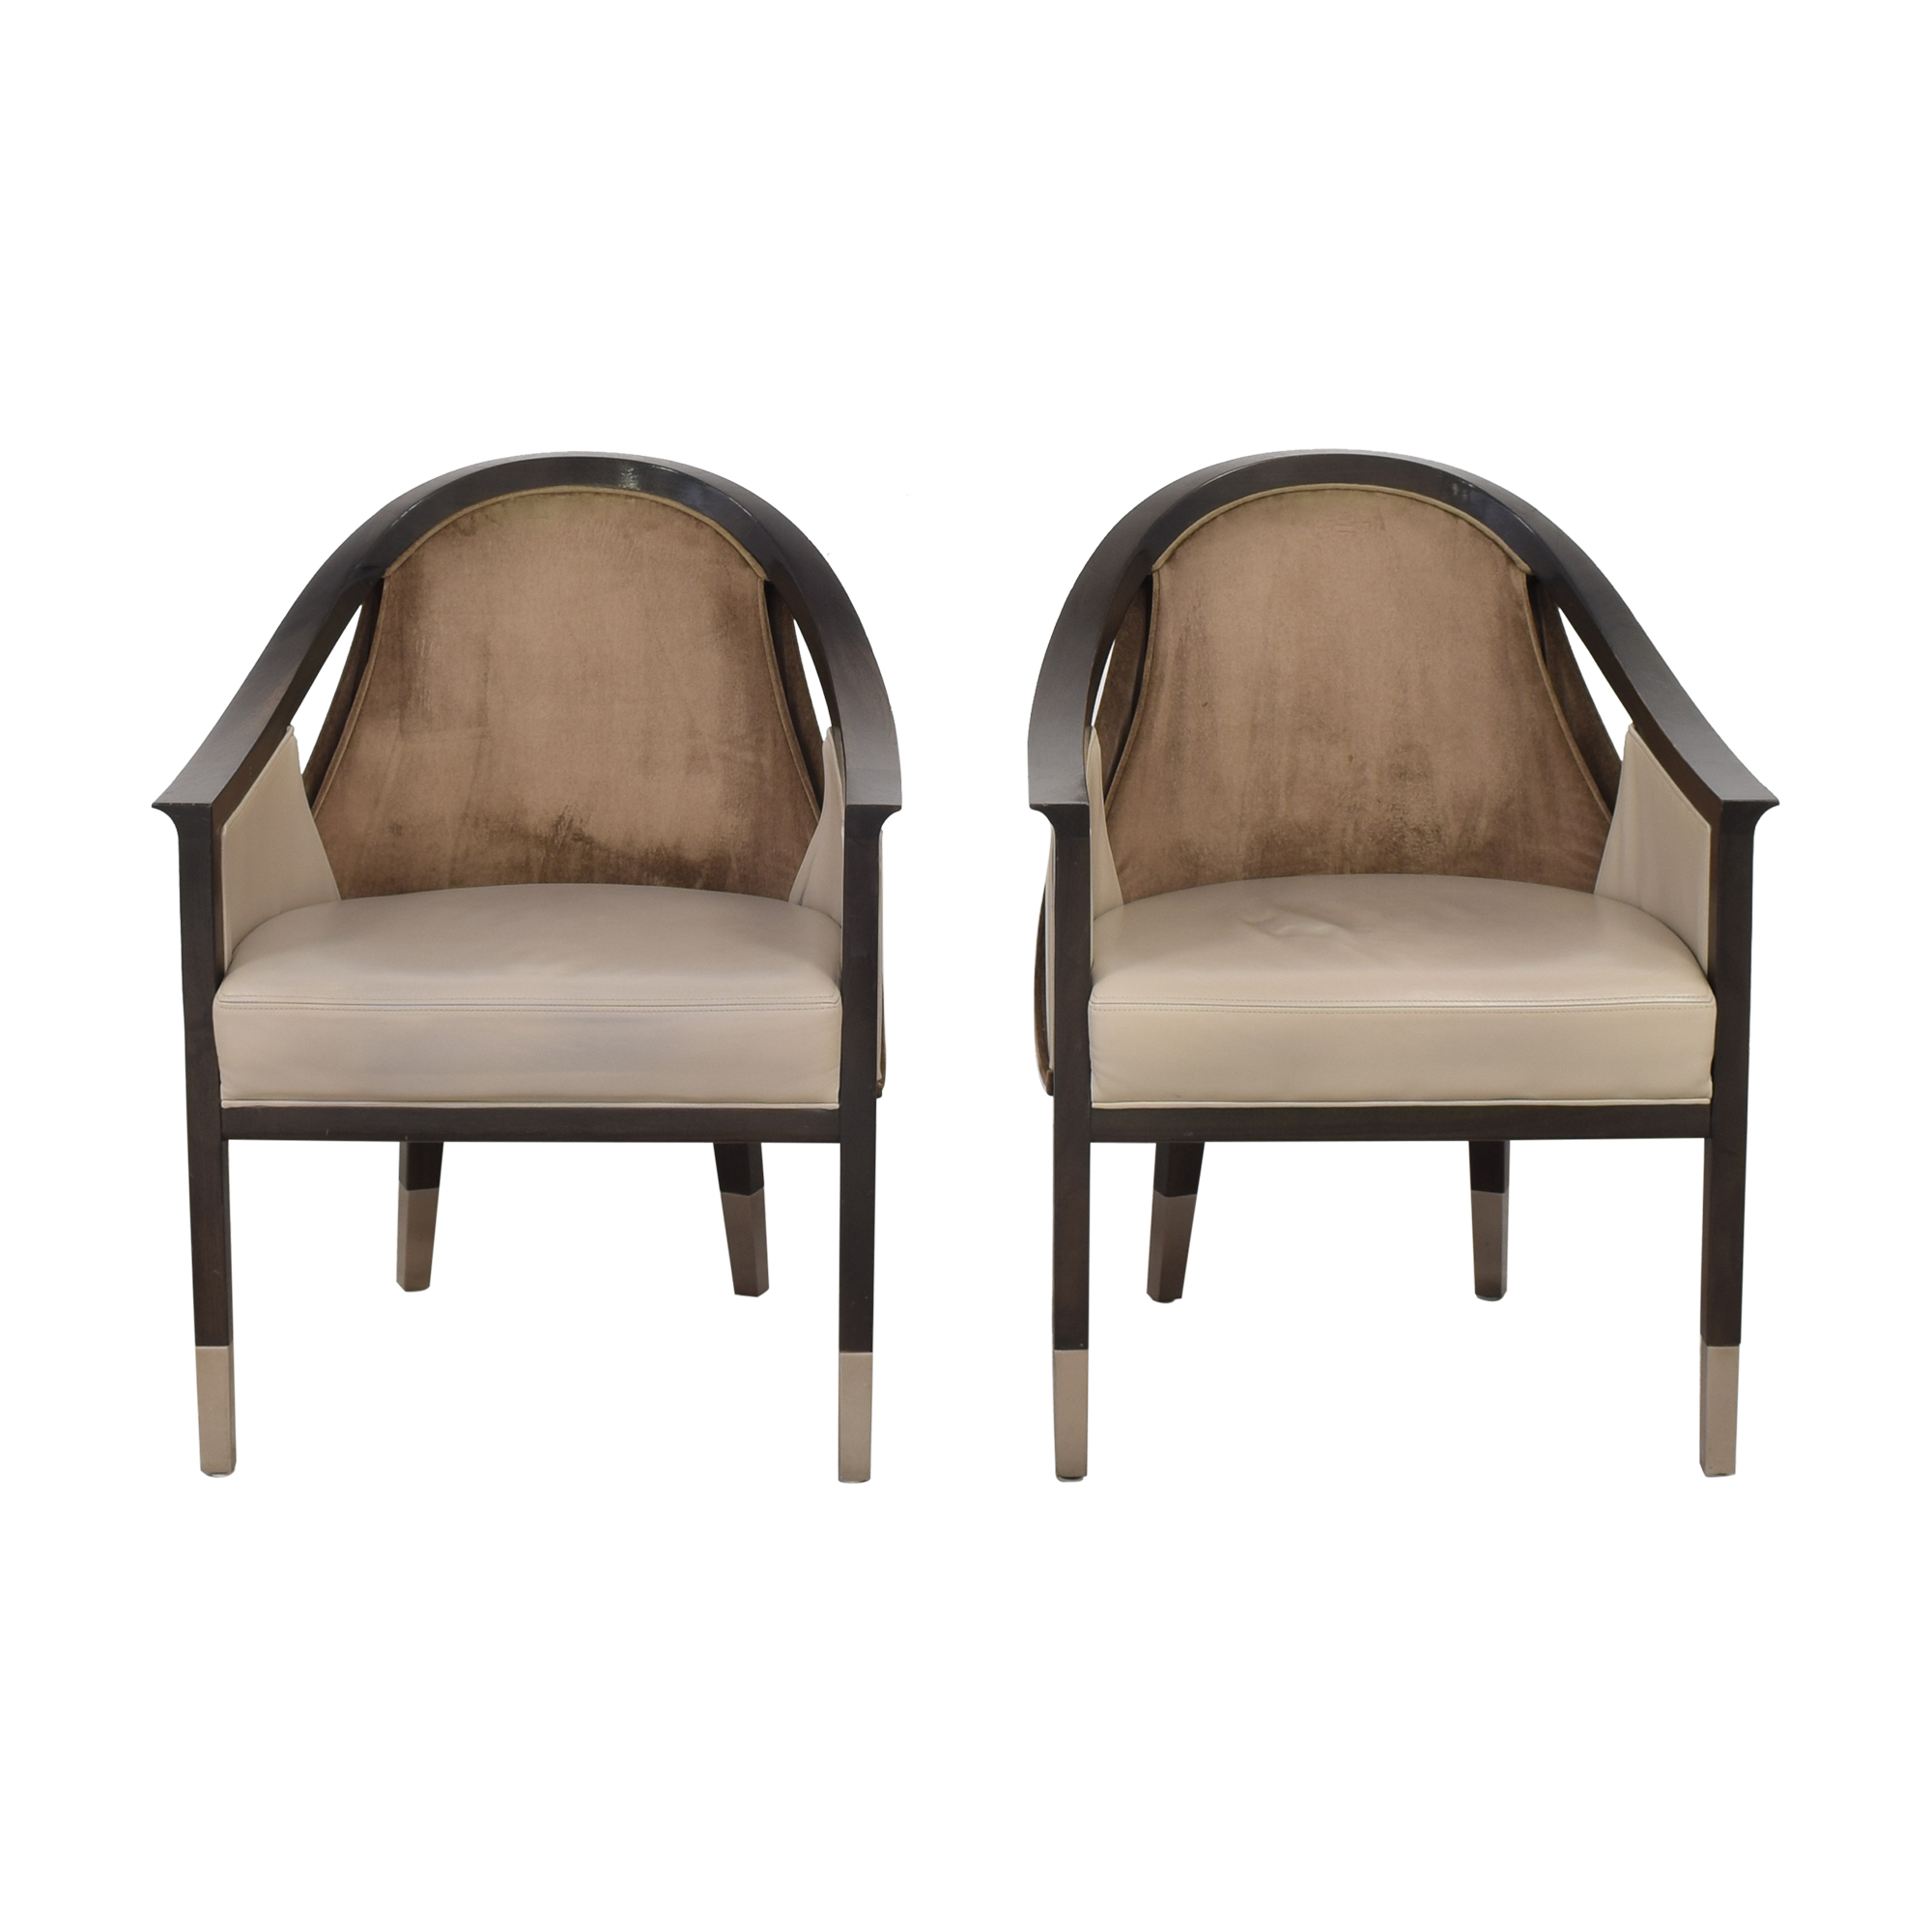 Allied Form Works Allied Works Eleven Madison Park Dining Room Chairs price